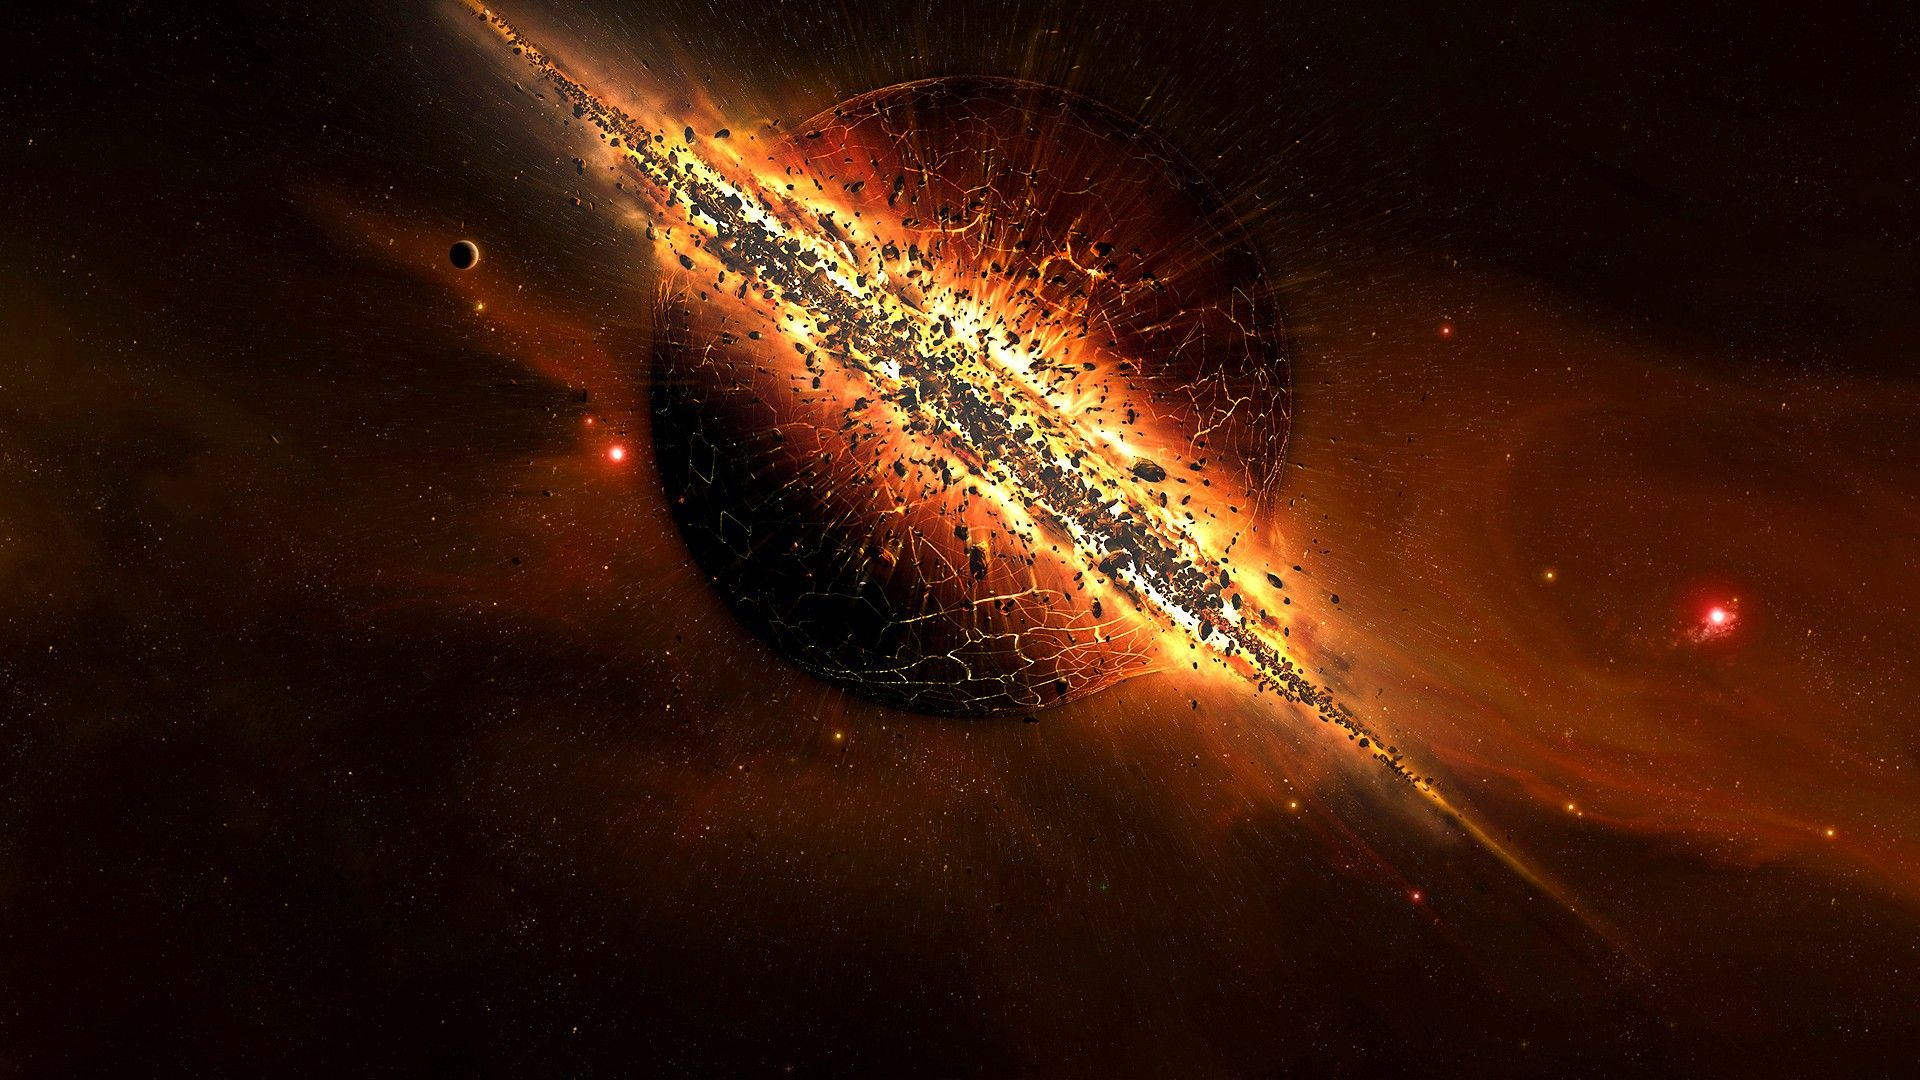 Explosion in space wallpaper space wallpapers hd wallpapers explosion in space wallpaper space wallpapers publicscrutiny Choice Image